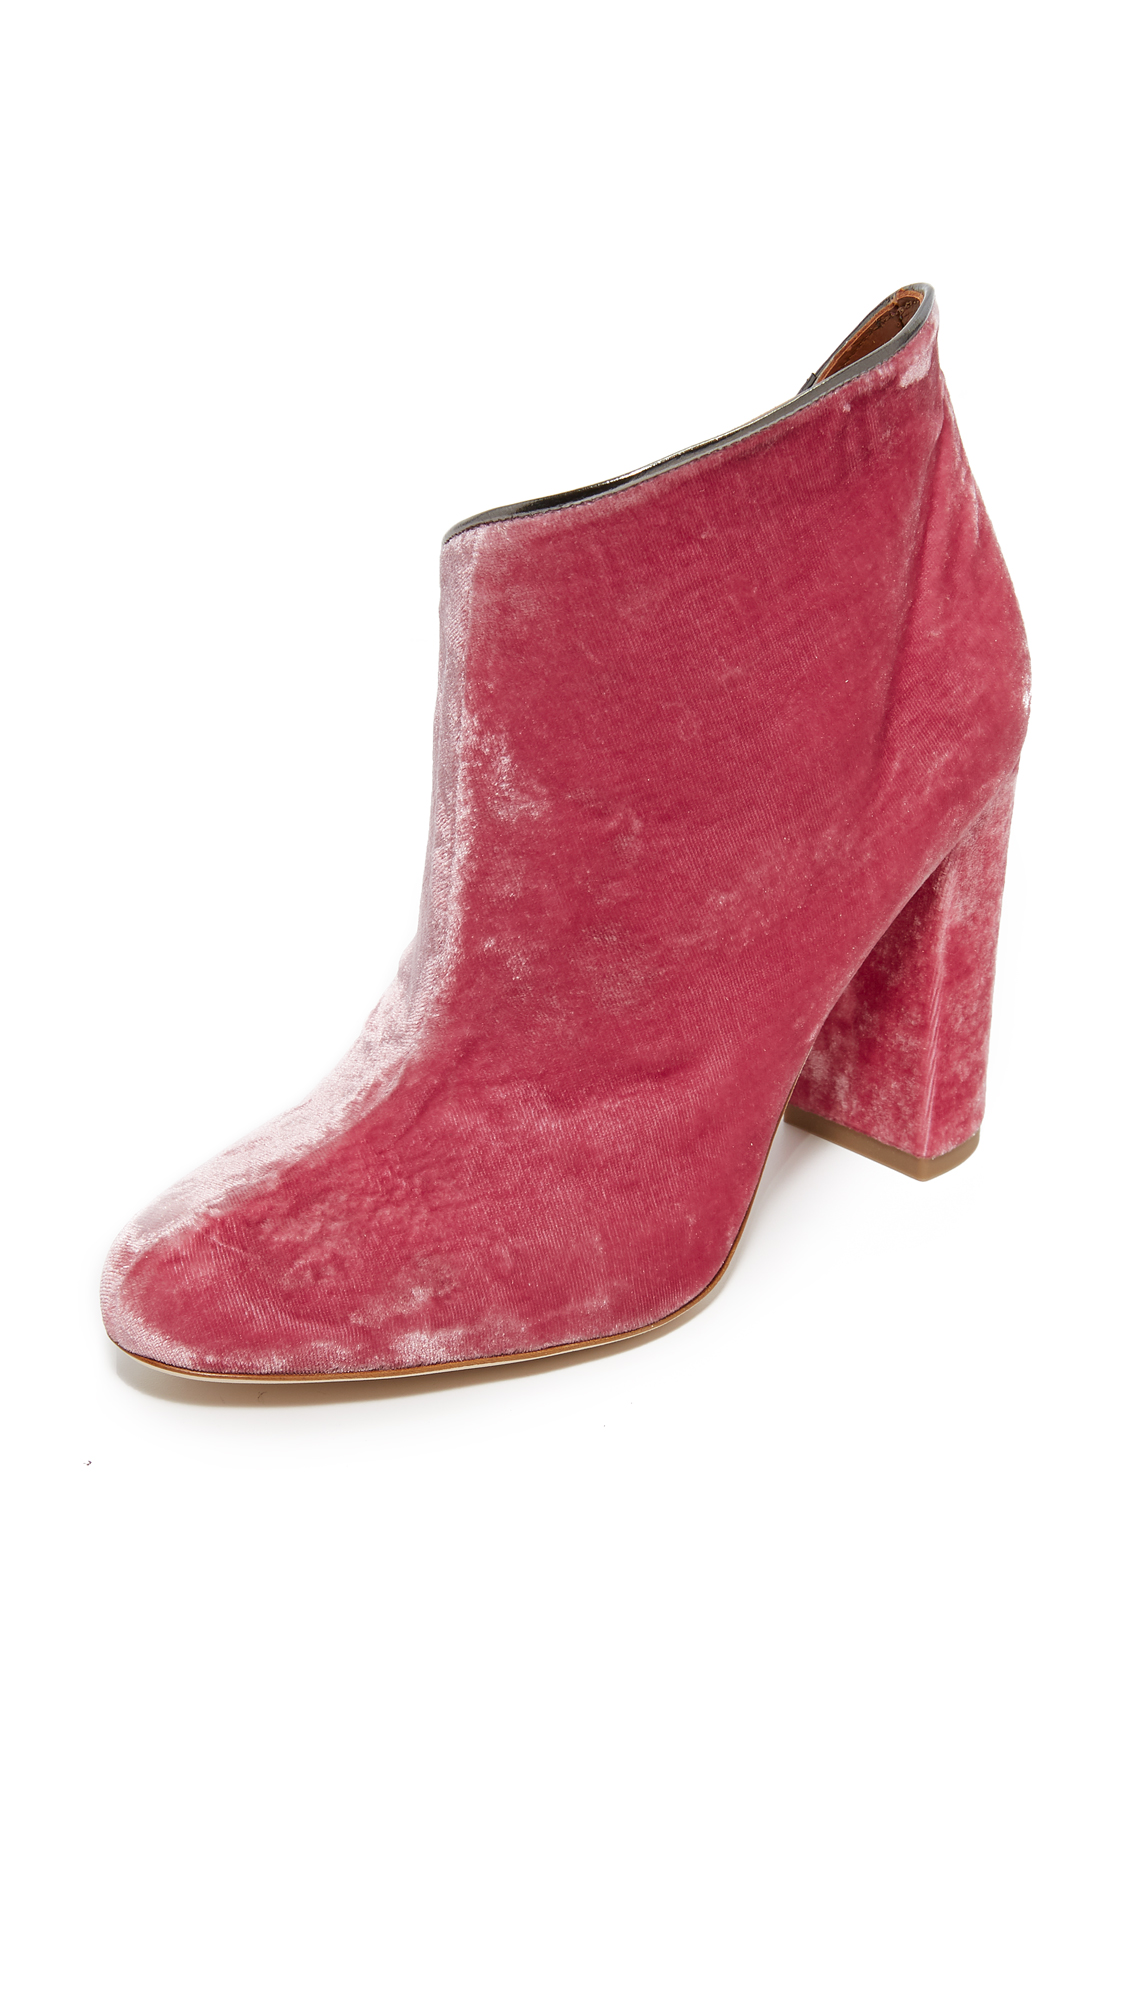 Malone Souliers Eula High Heel Booties - Pink/Charcoal